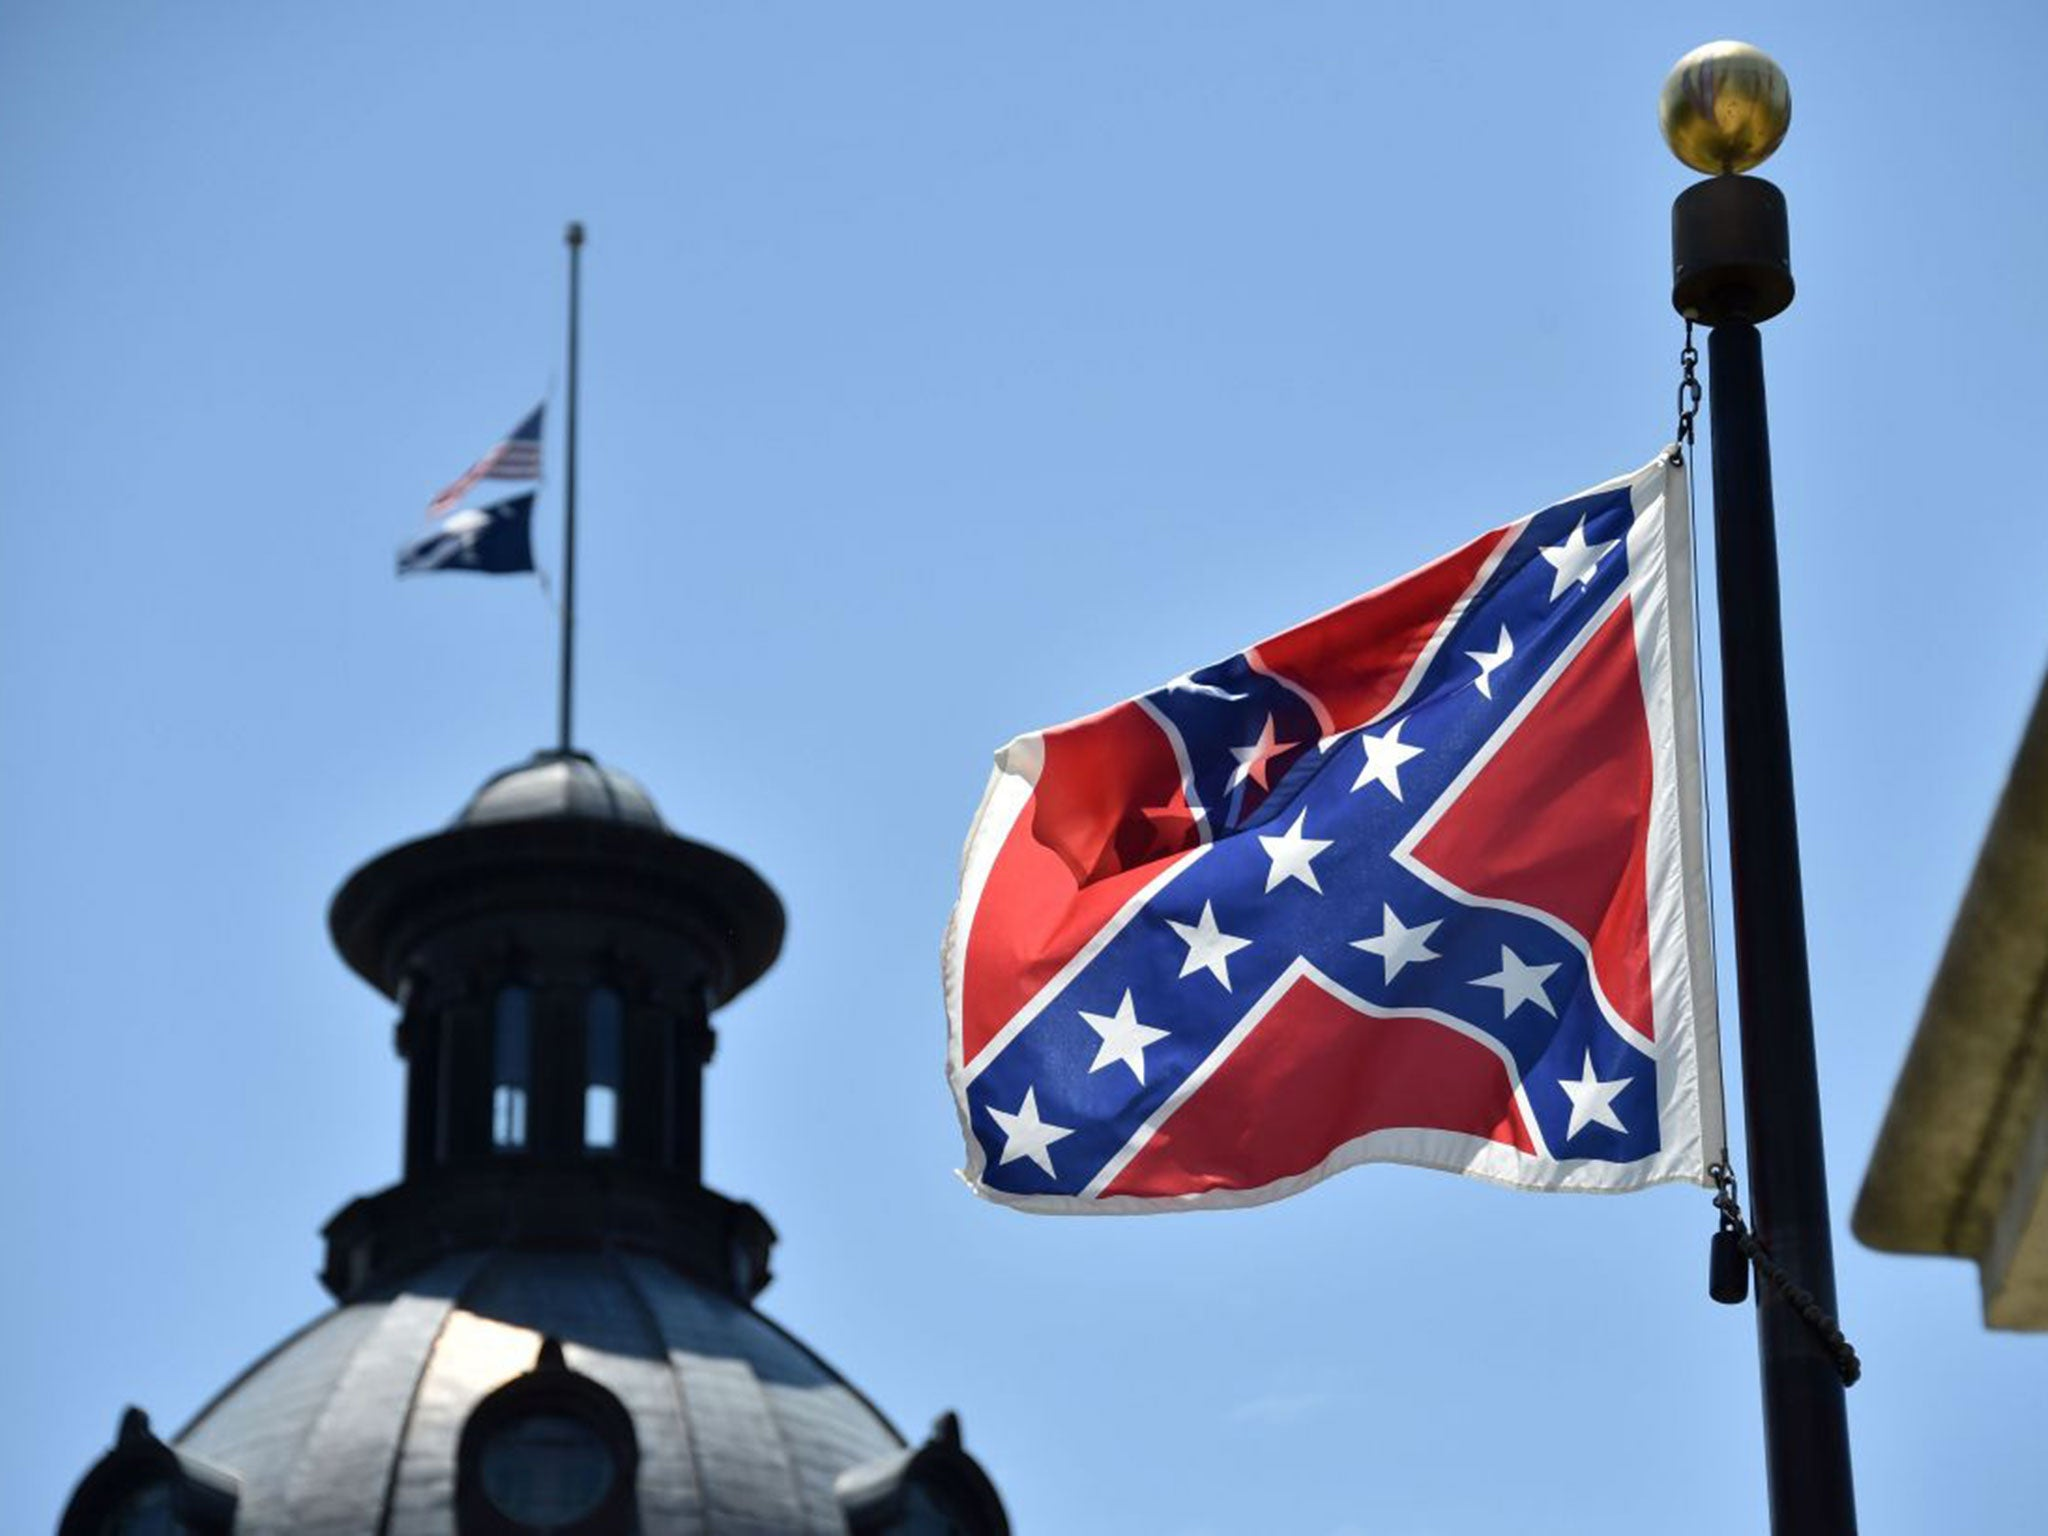 a discussion about the decision by the south carolina to raise a confederate flag atop the statehous